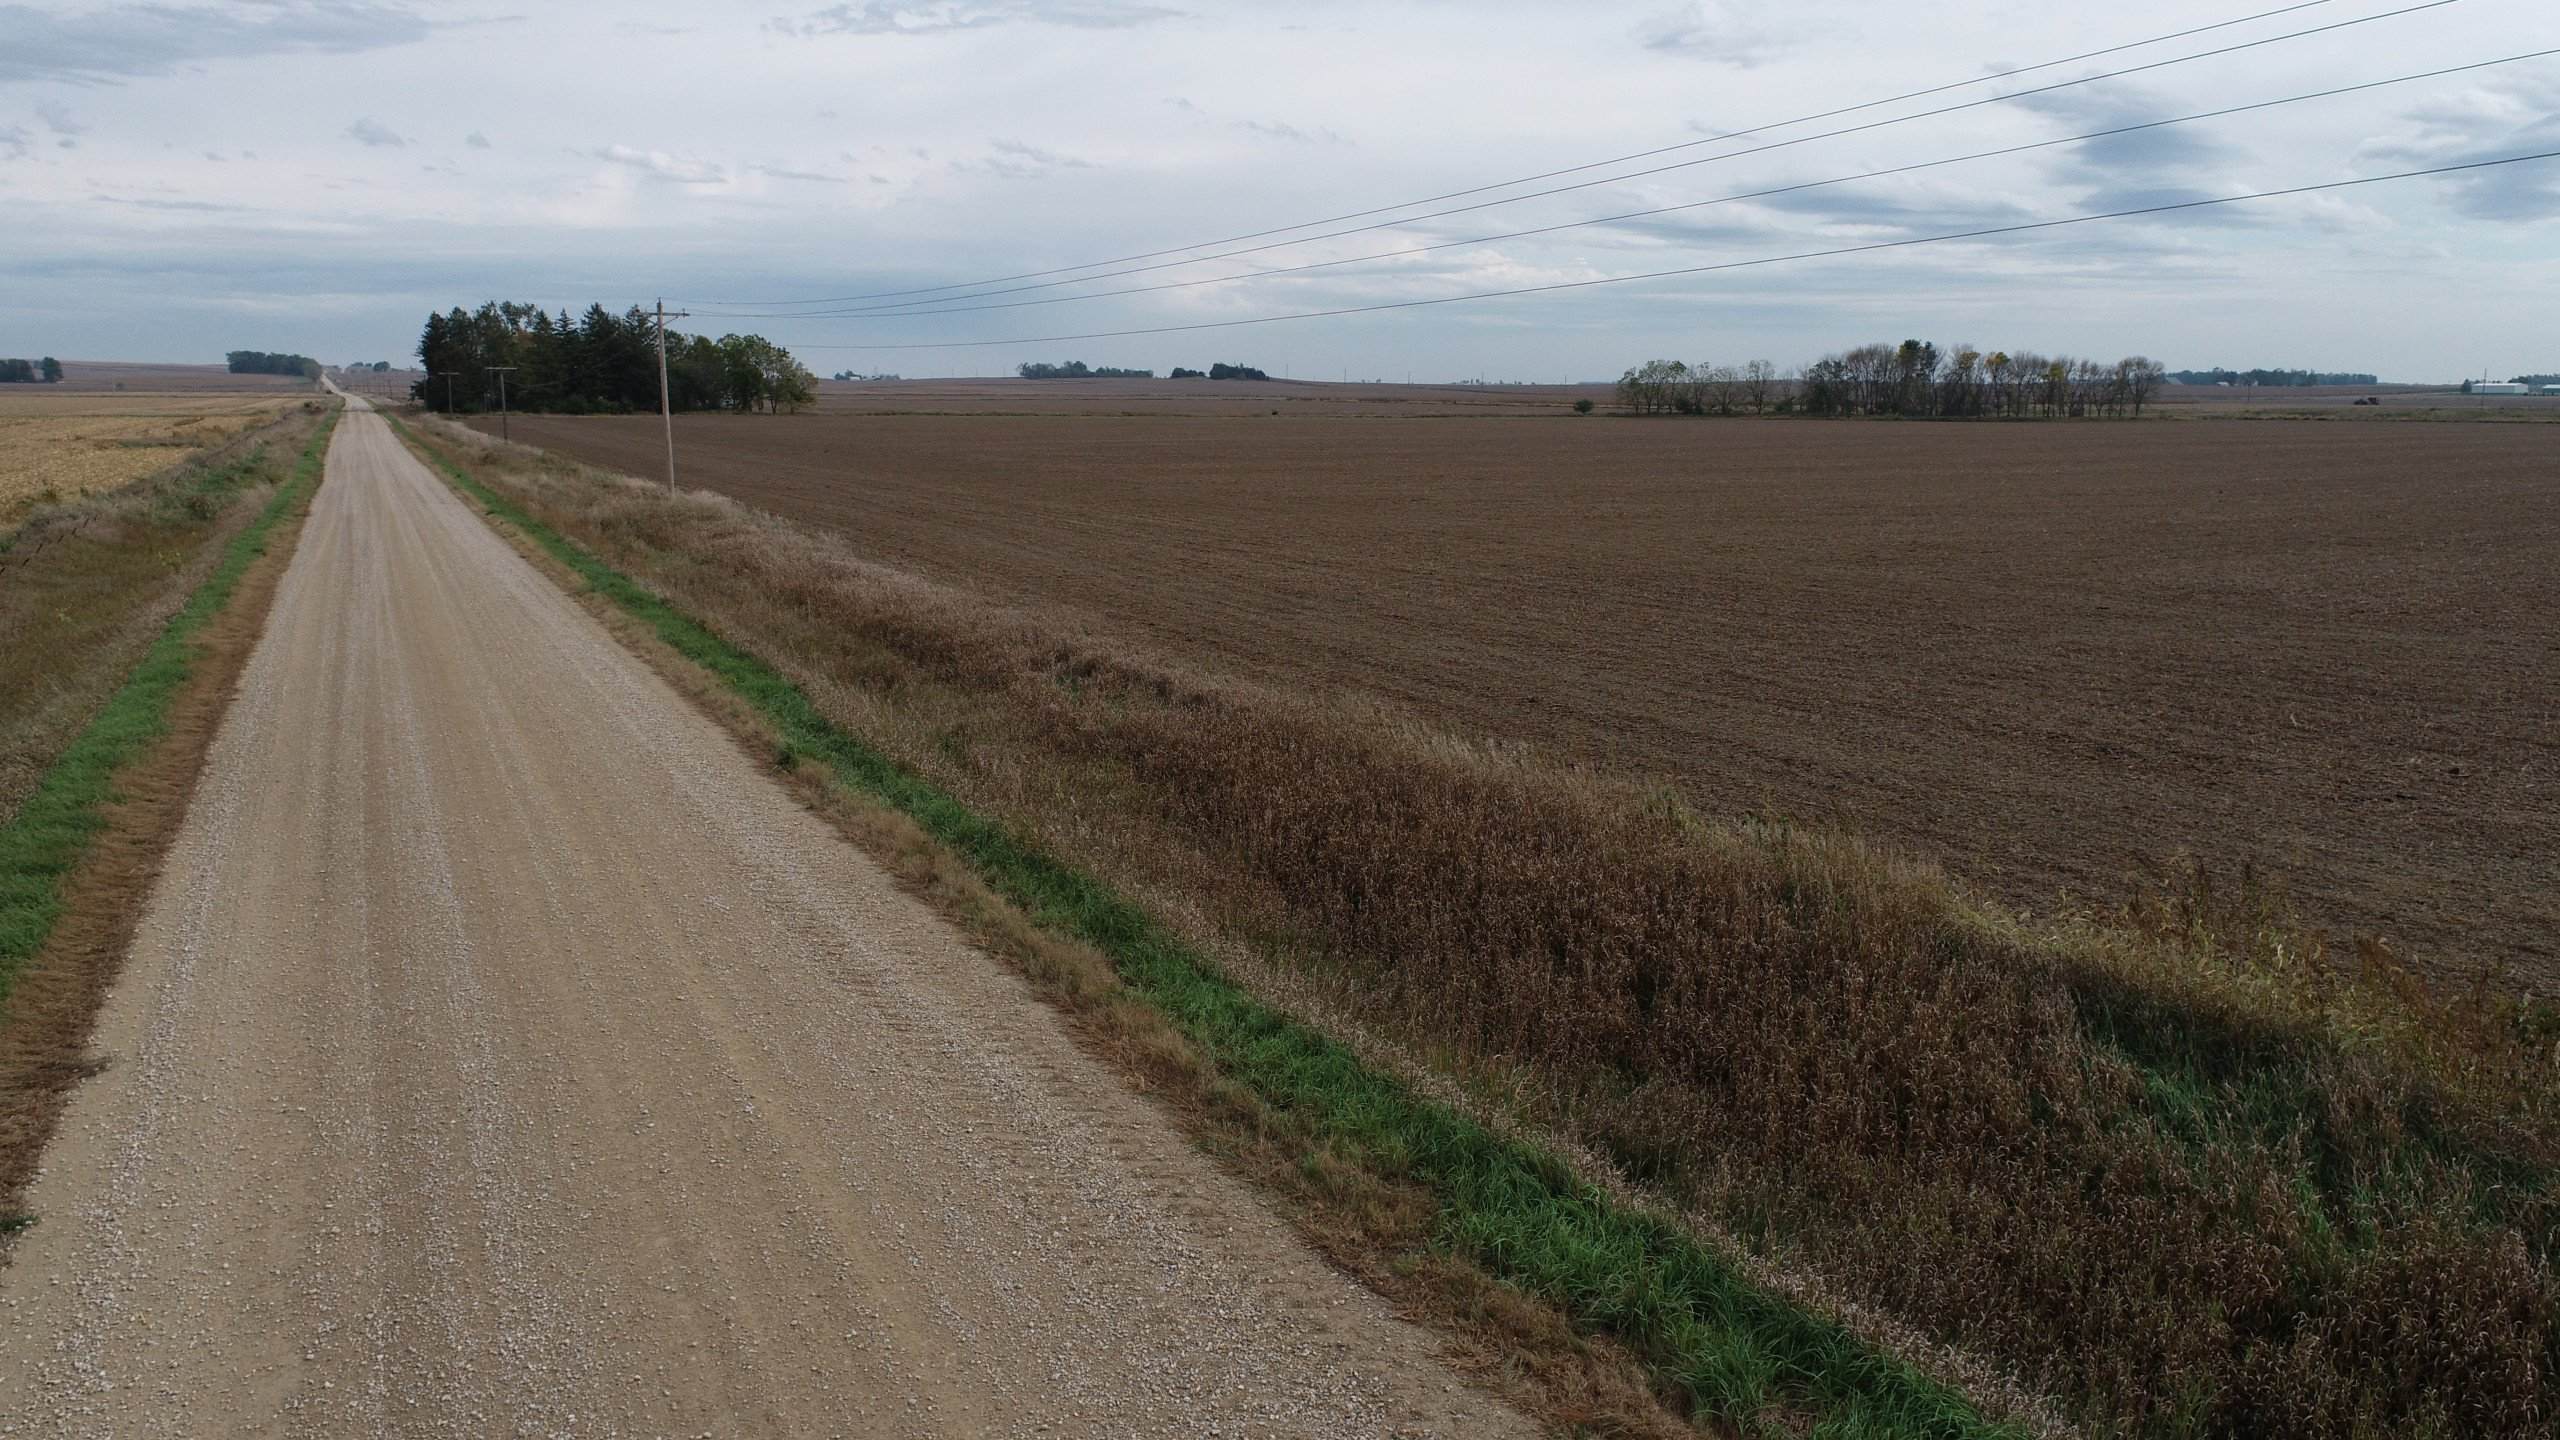 auctions-clinton-county-iowa-80-acres-listing-number-15792-DJI_0092-4.jpg